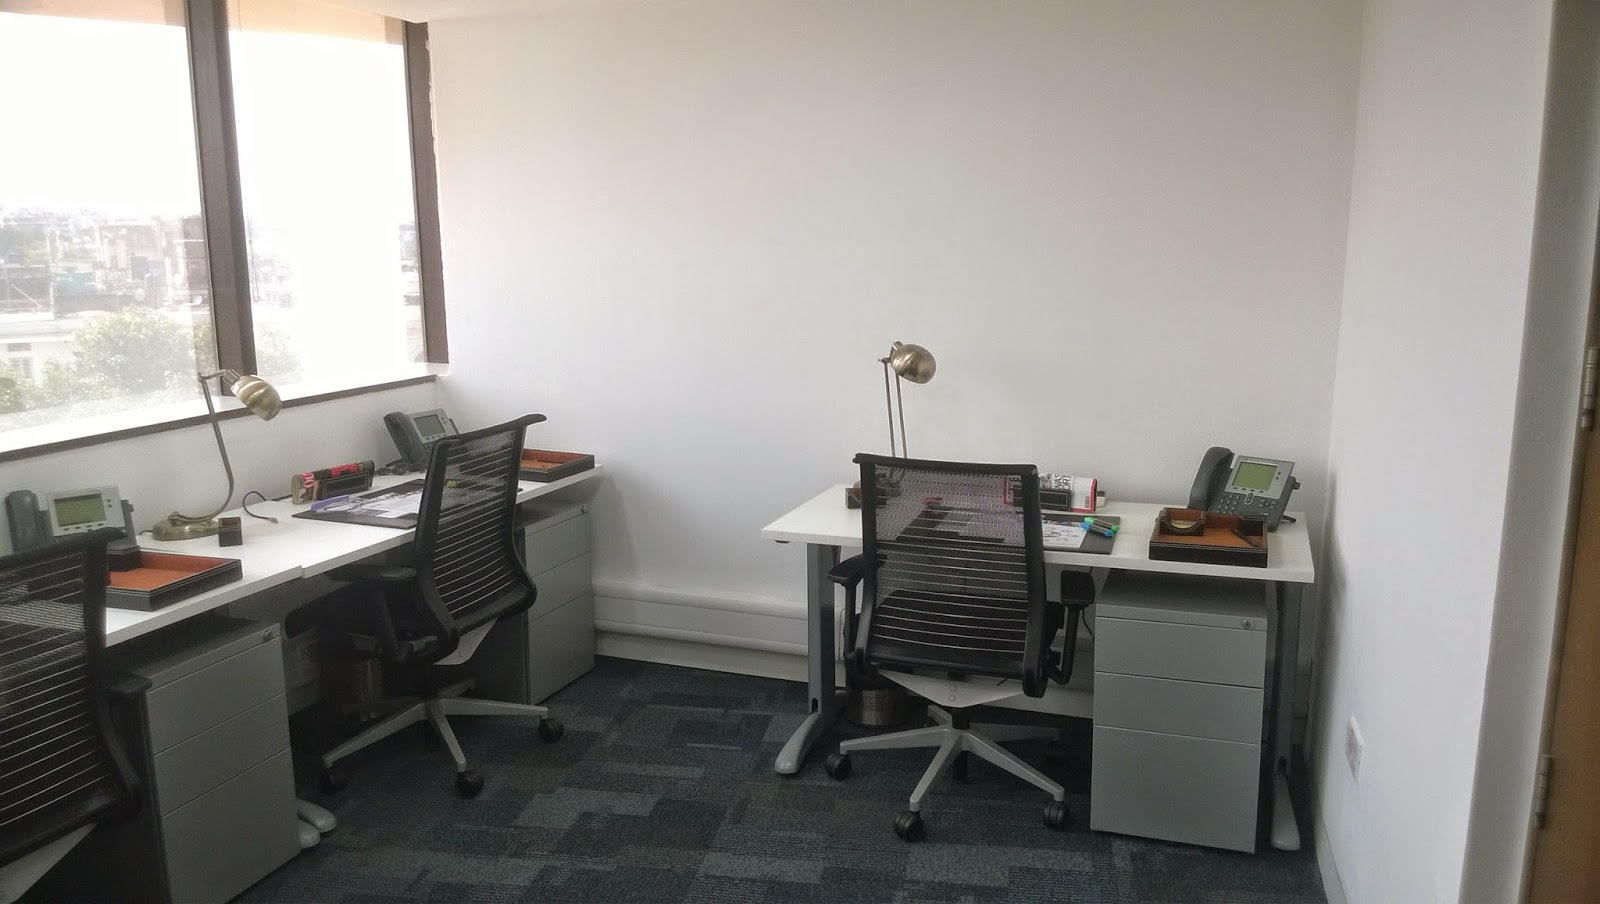 What Makes Serviced Offices a Good Choice for You?